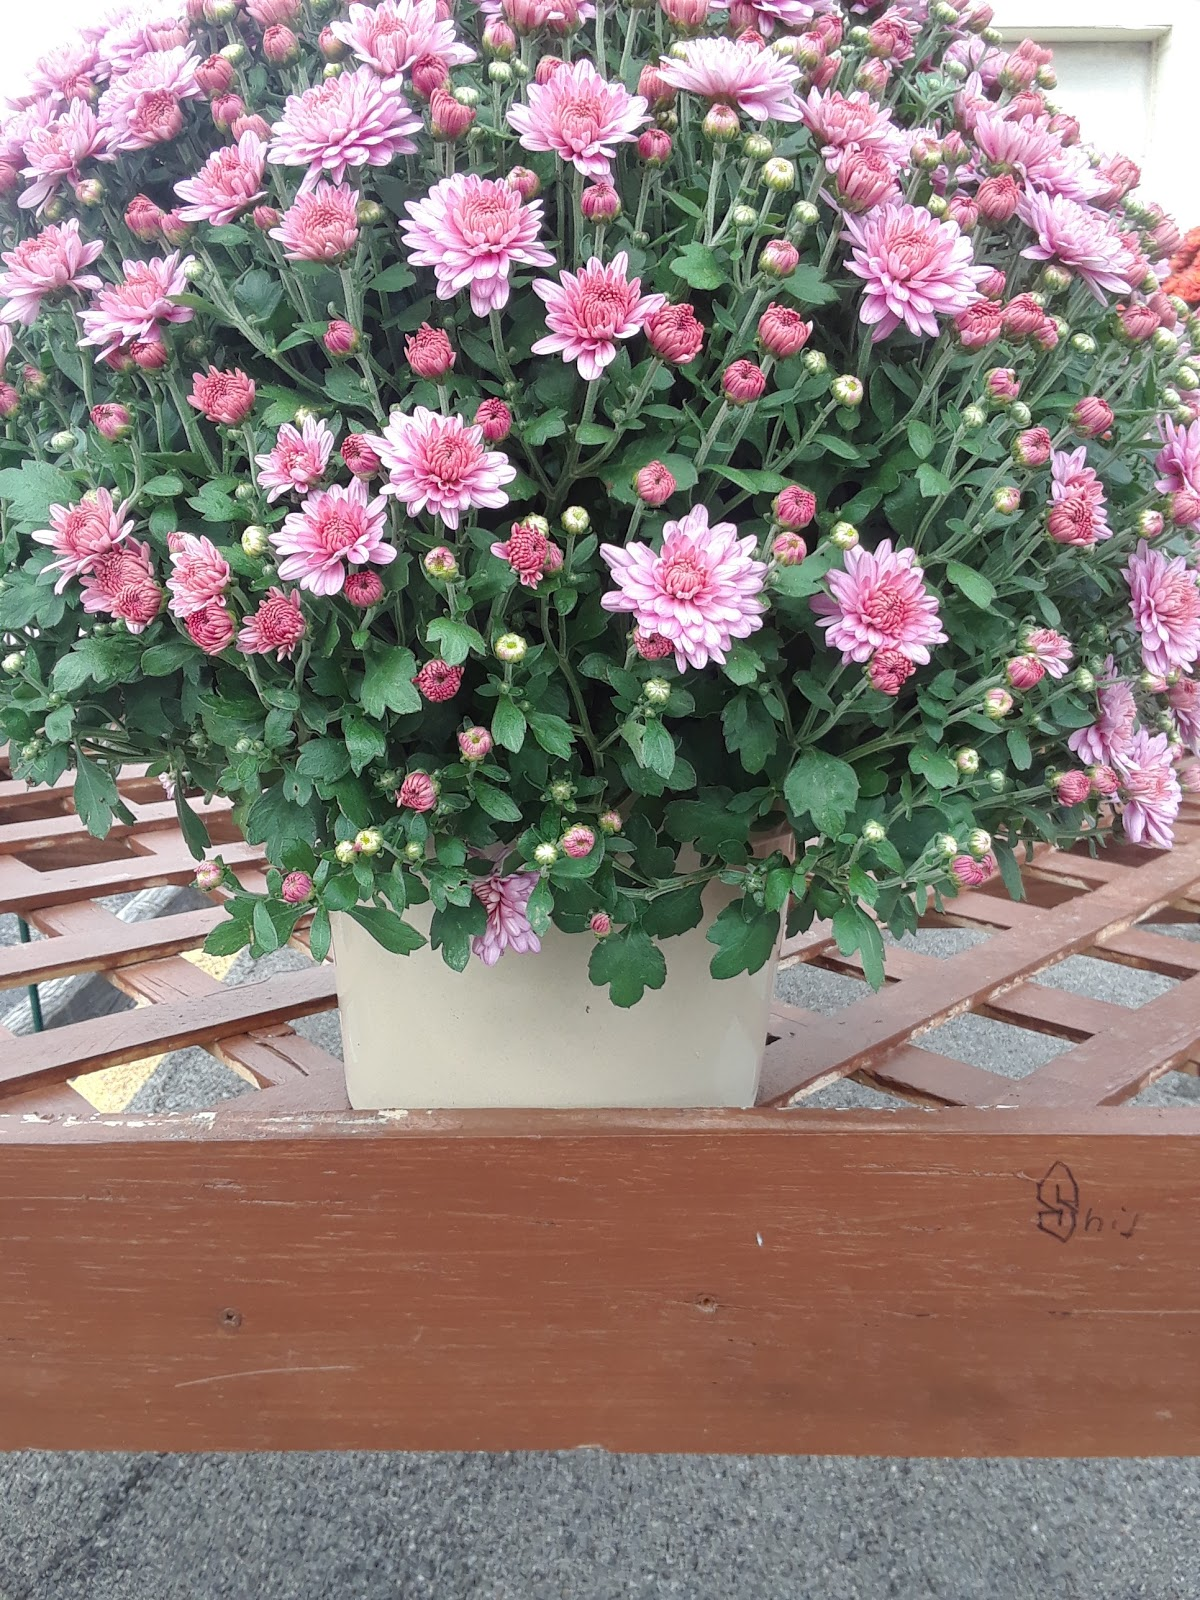 Pink Flowers Outside on Brown Table